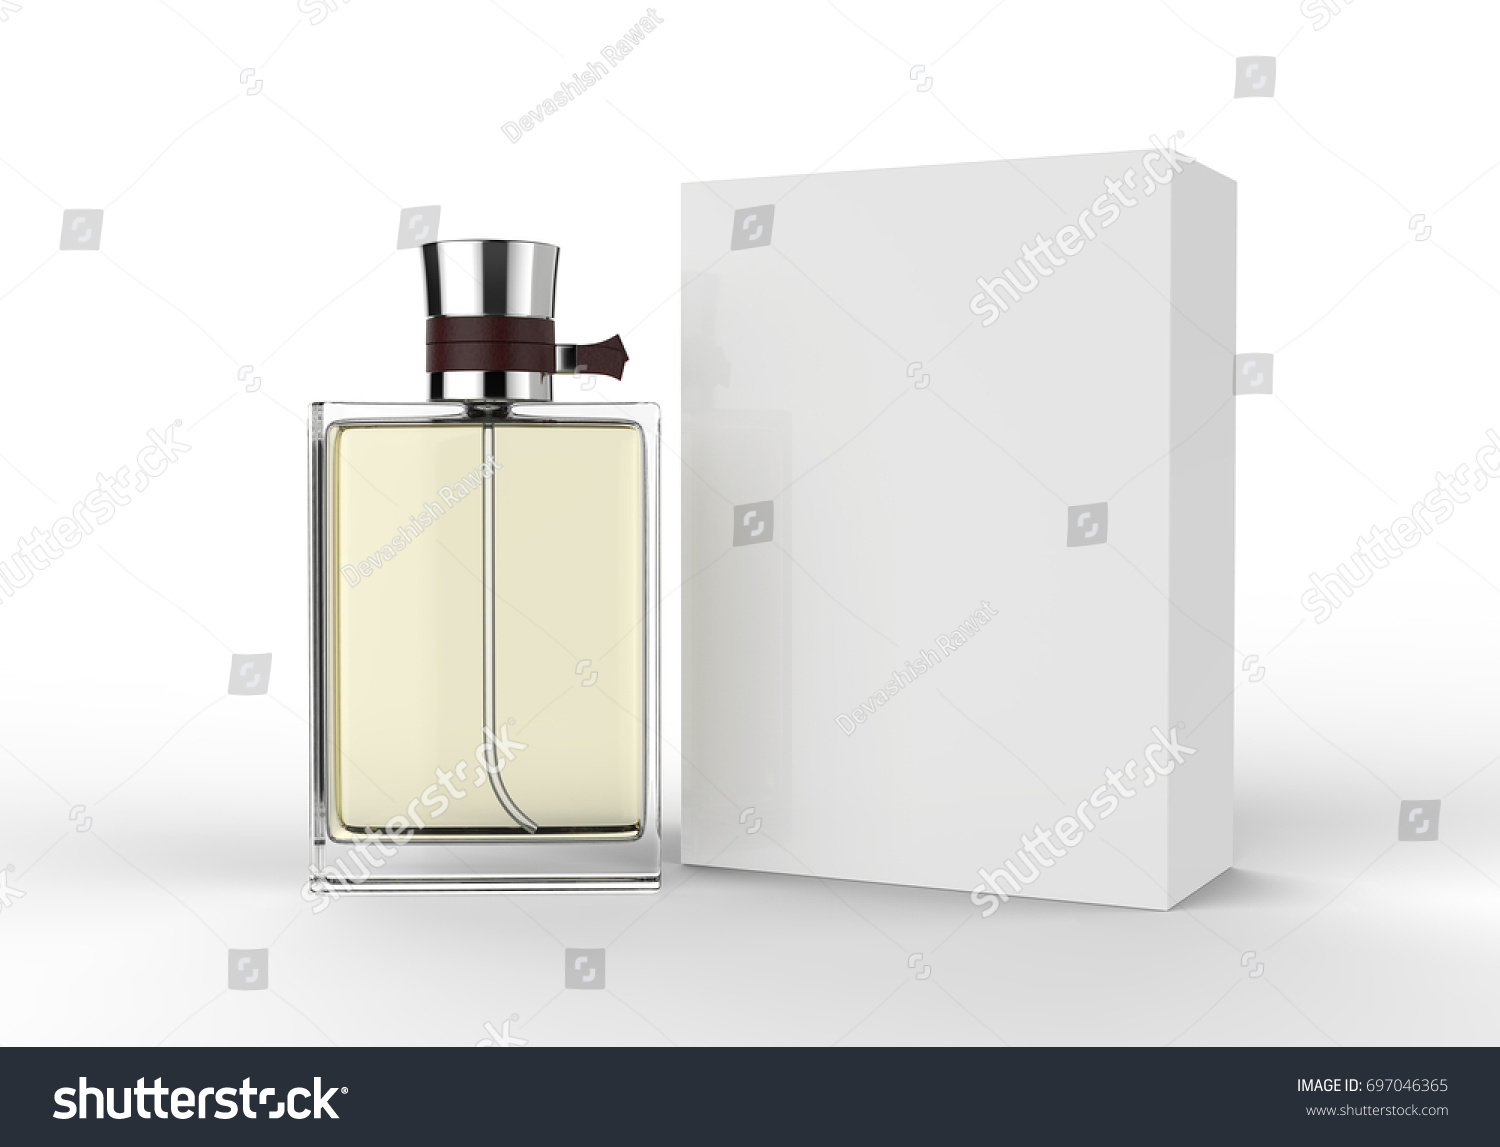 cologne box template - perfume bottle box mock template on stock illustration